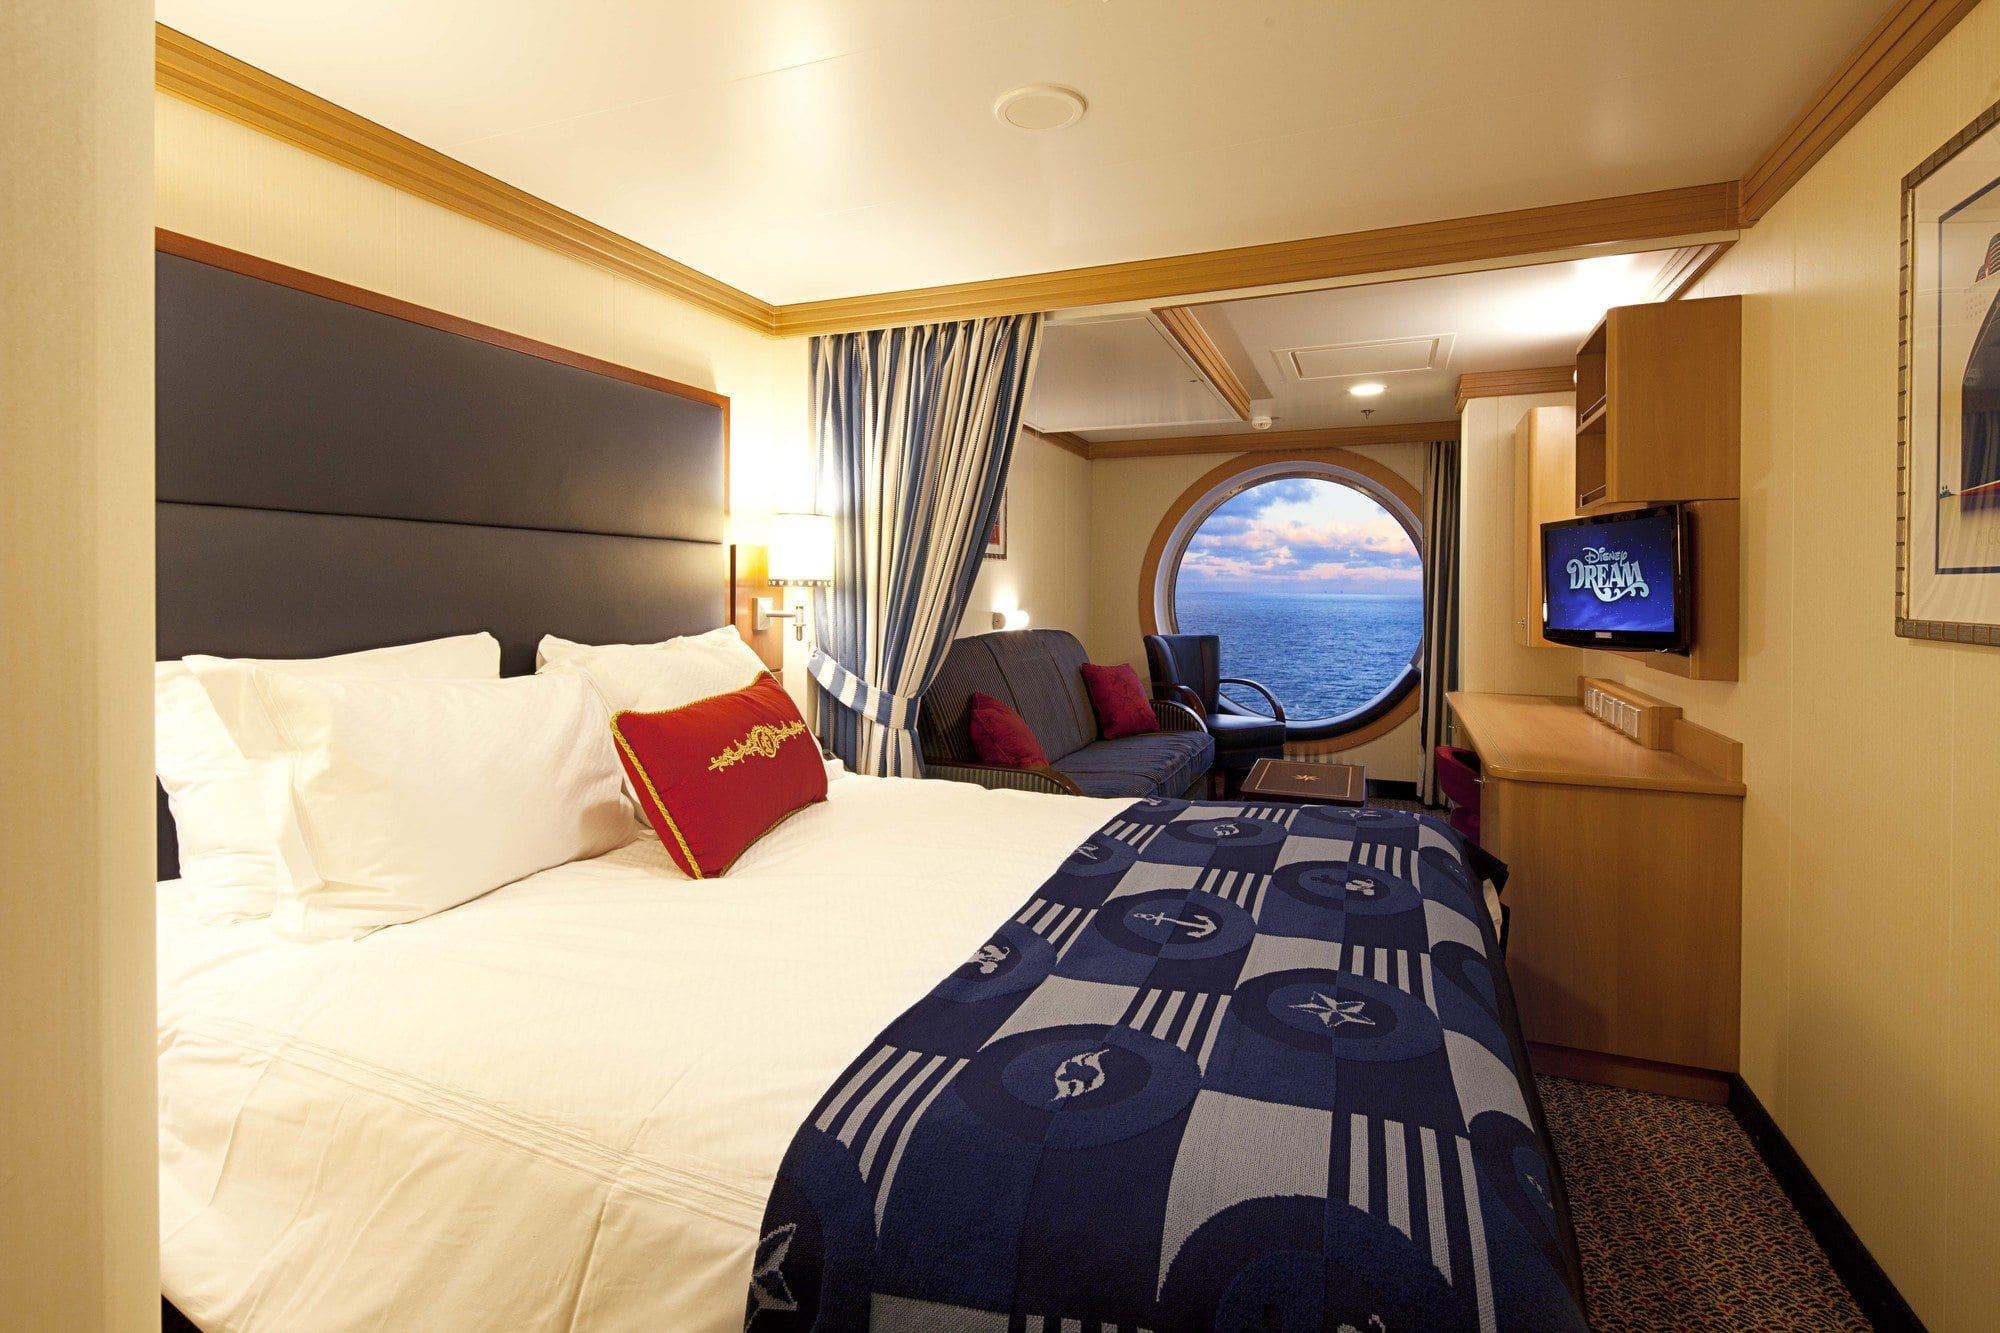 Art Deco-inspired Deluxe Family Oceanview Stateroom on Disney Dream has features sure to please families